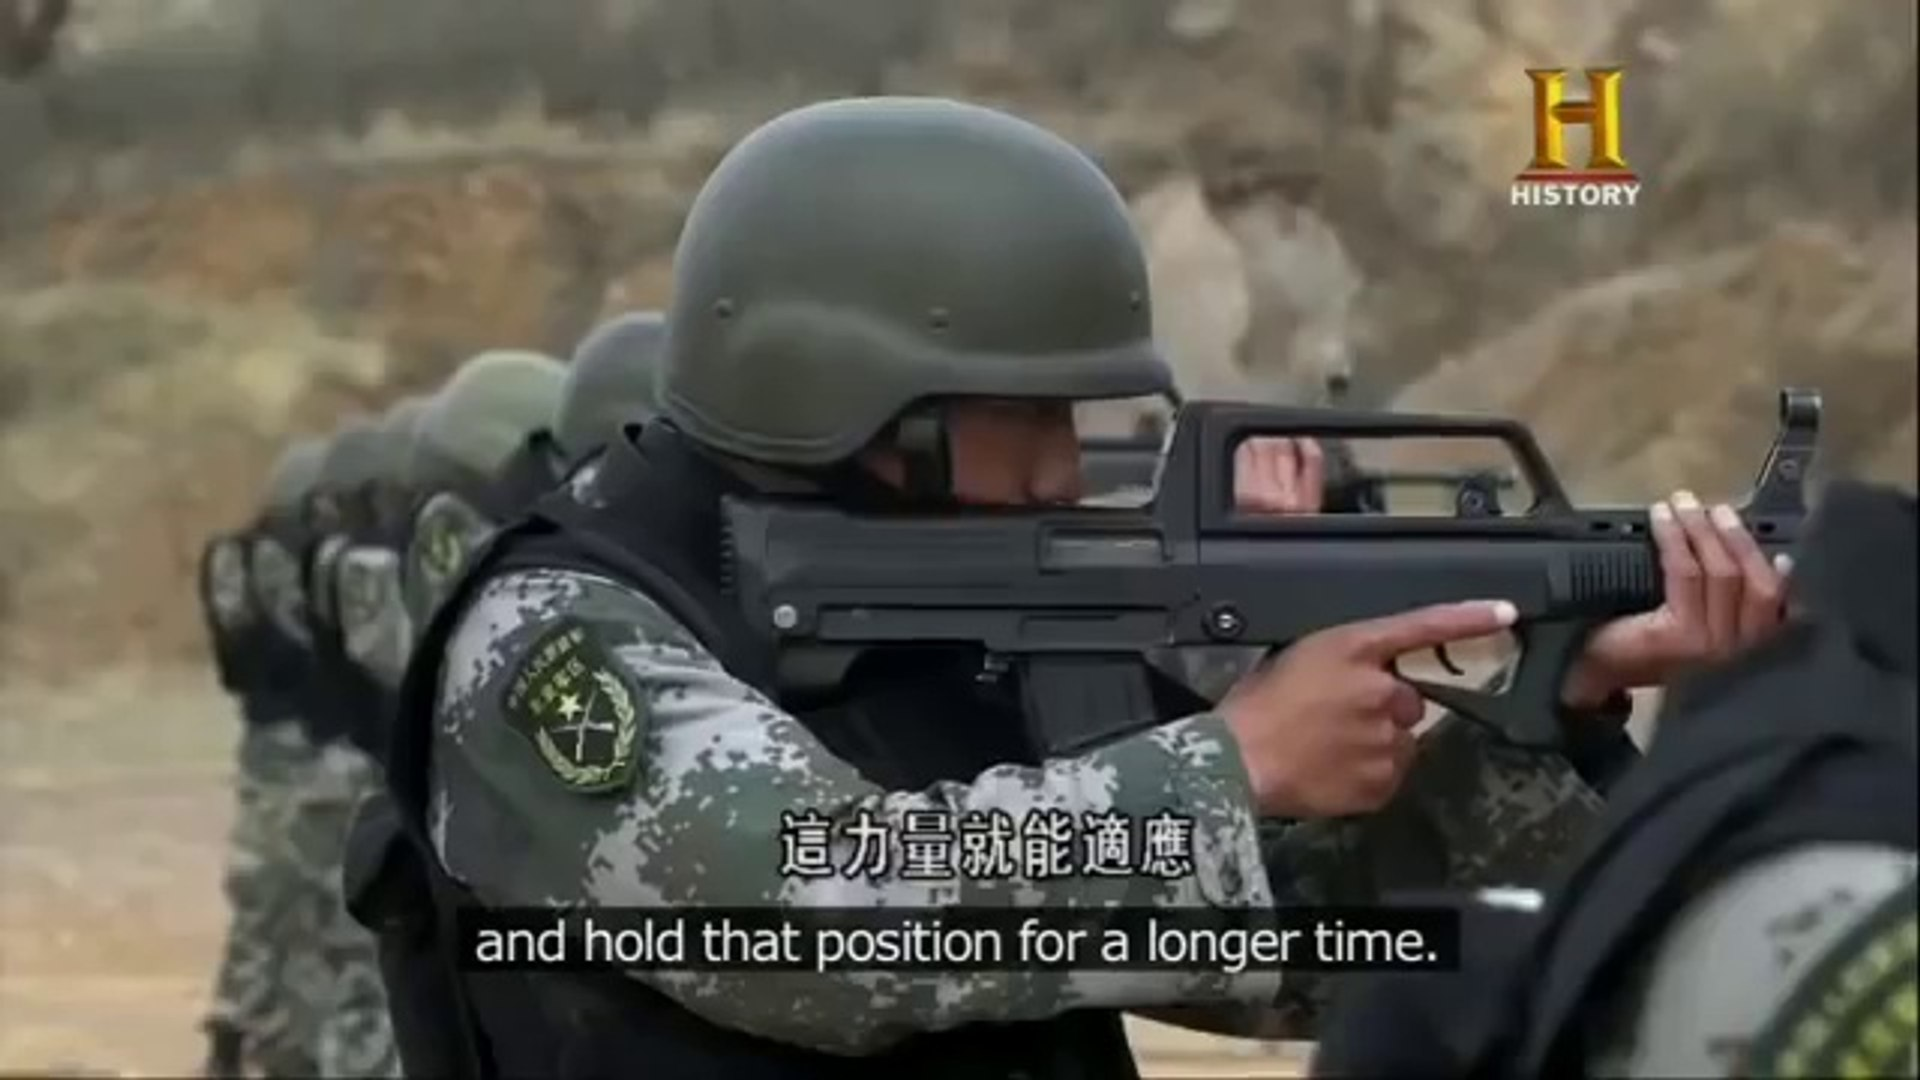 CHINESE SPECIAL FORCES DOCUMENTARY - Military History and War Documentaries (full documentary)